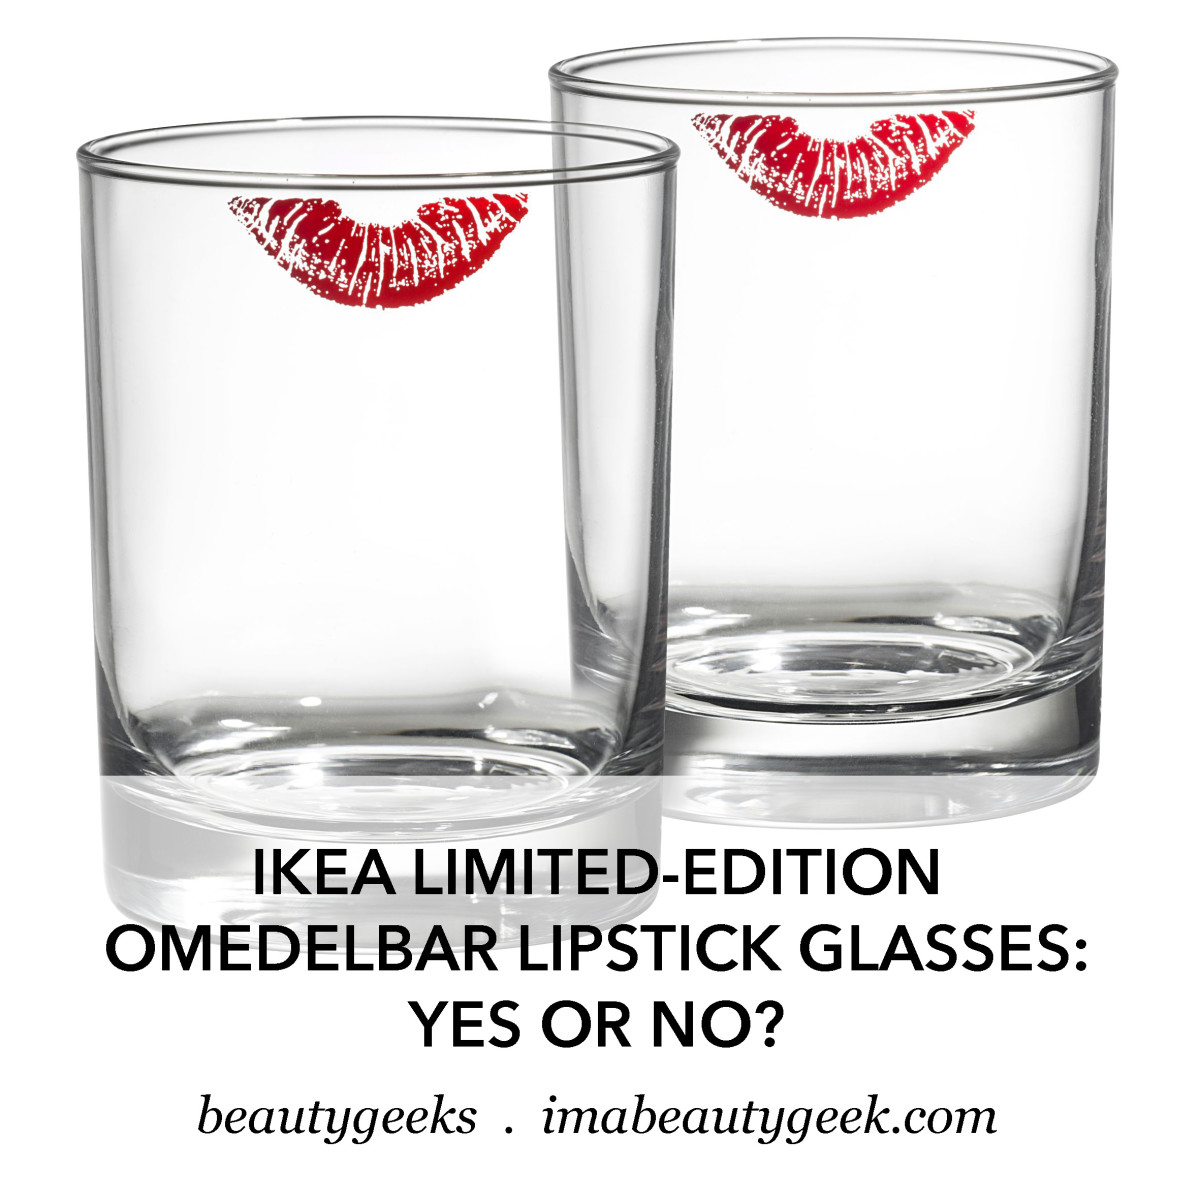 Ikea OMEDELBAR Lipstick Glasses_yes or no